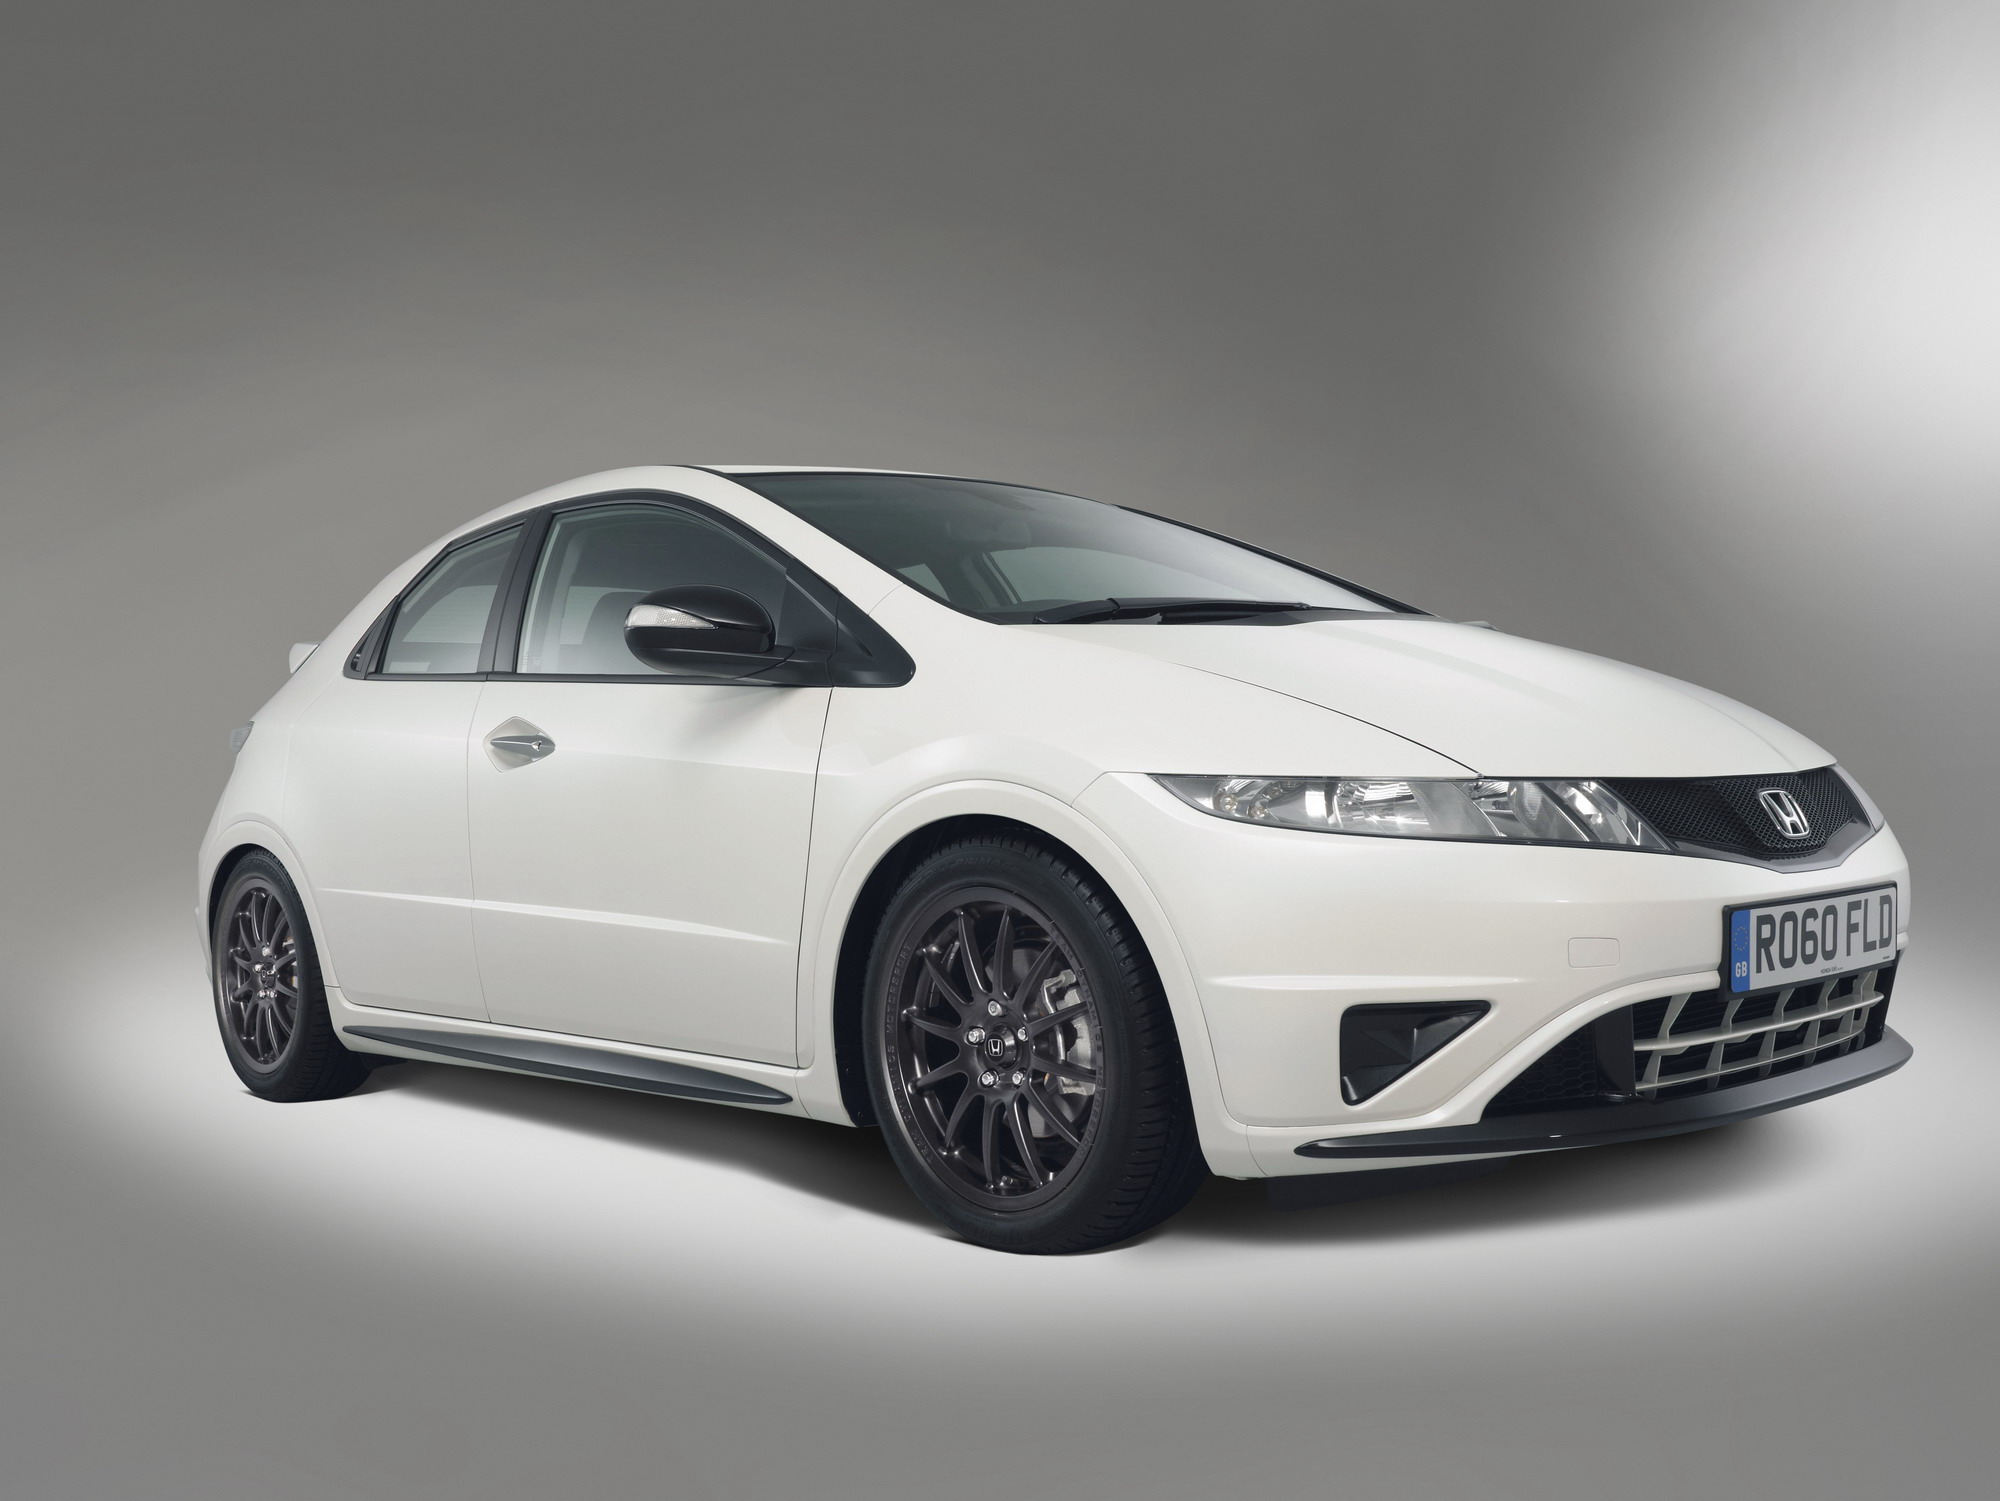 2011 Honda Civic Ti Limited Edition Top Speed